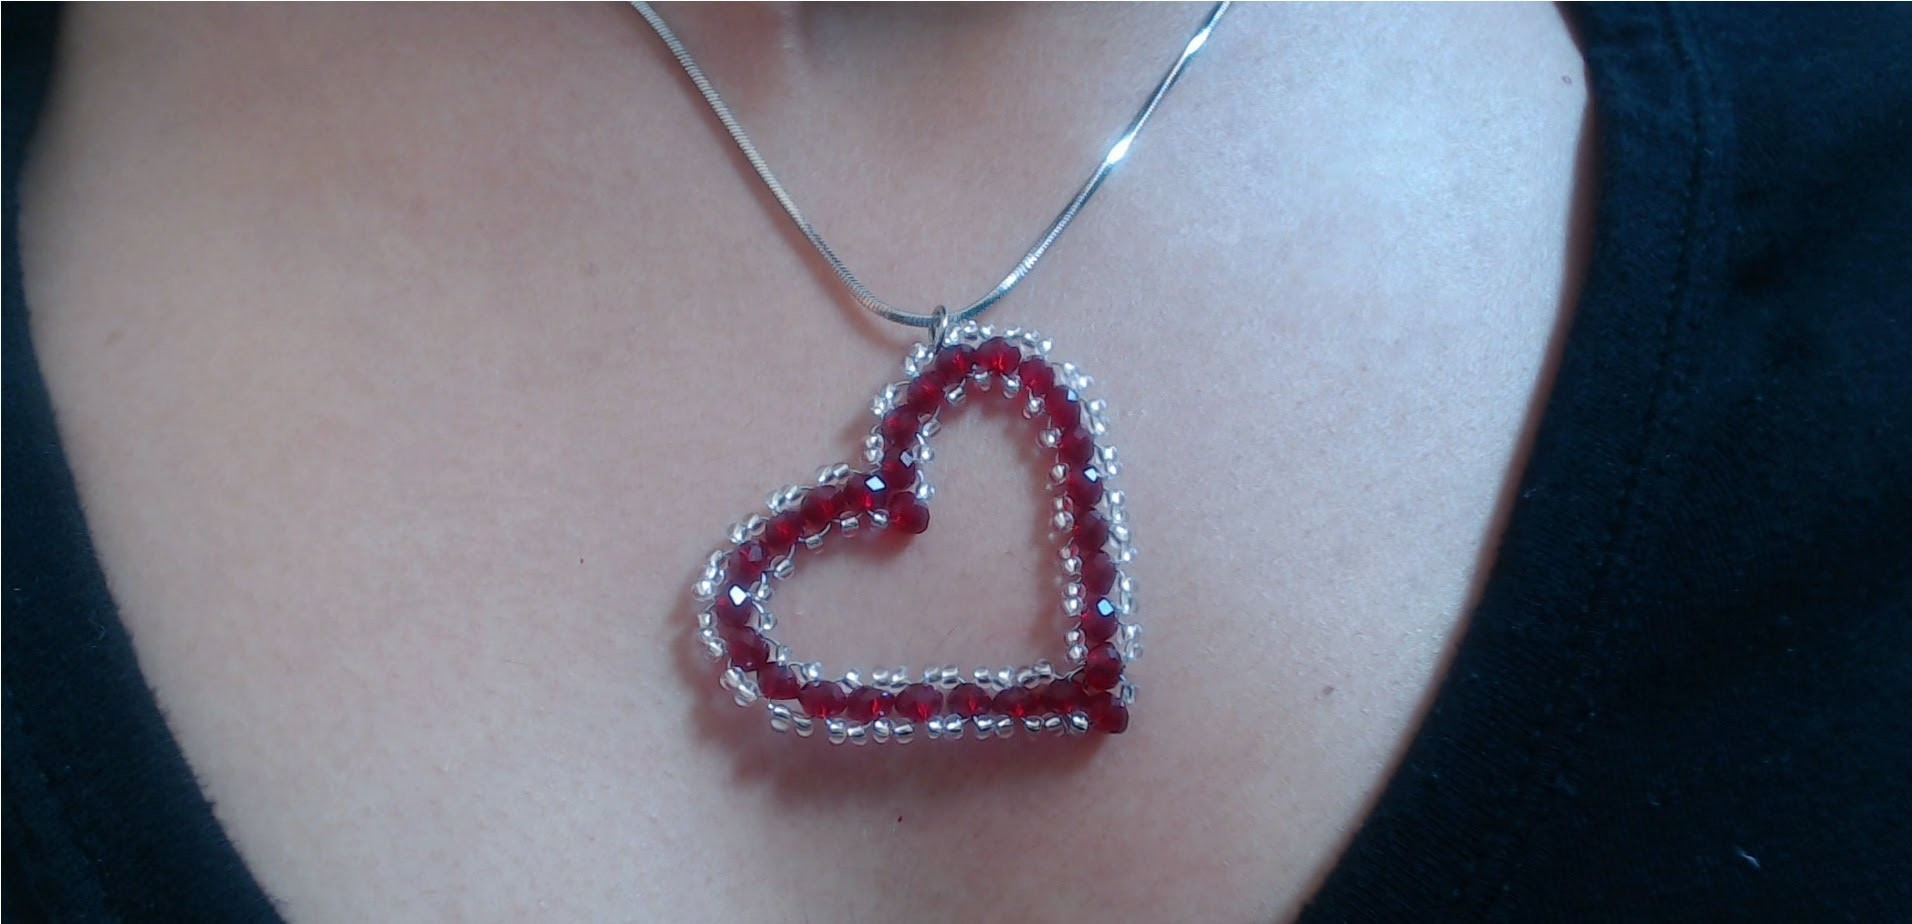 DIY Crystal Heart Pendant (quick and easy). Valentine's day project